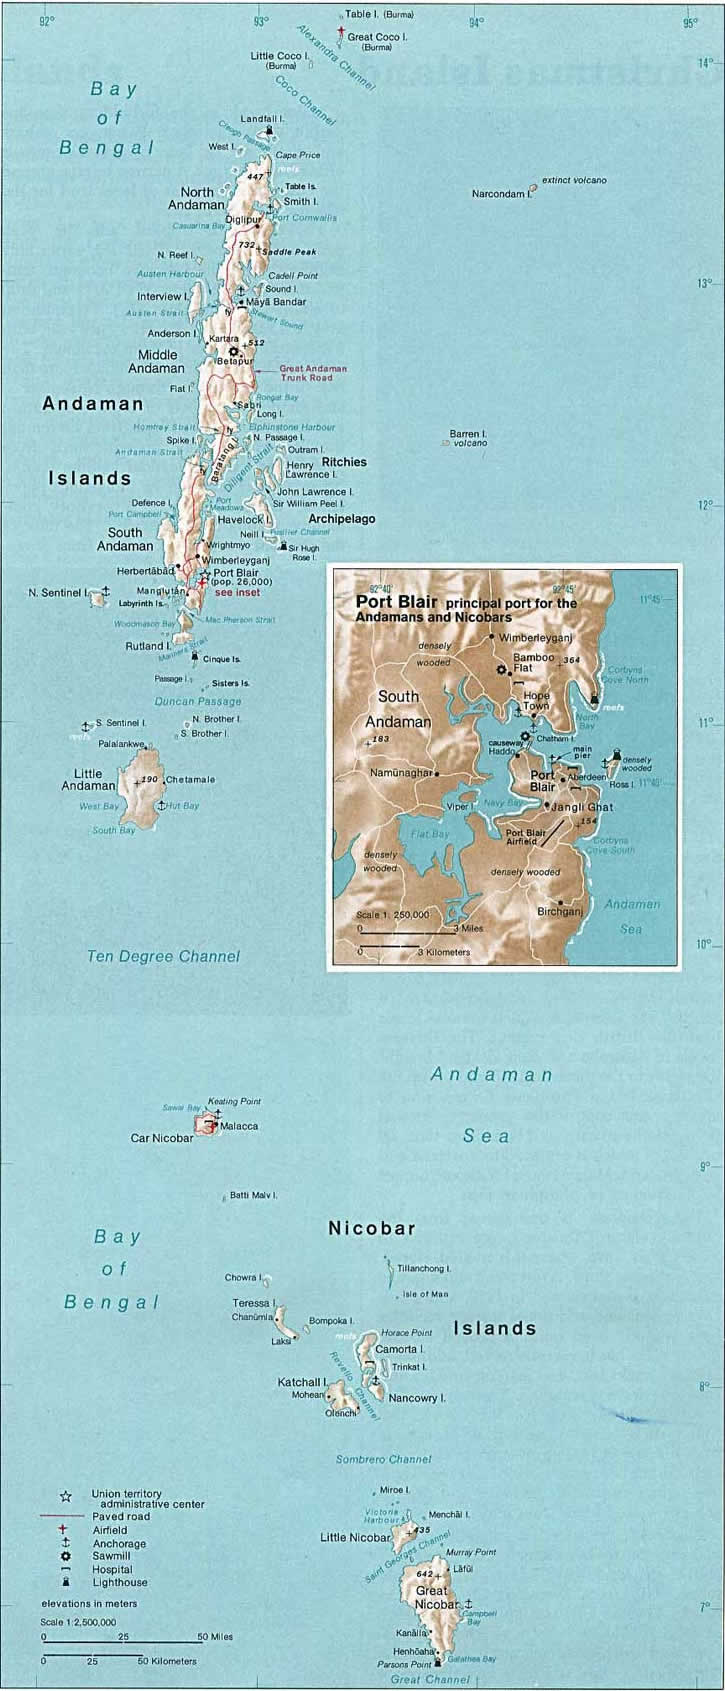 Andaman Islands-Nicobar Islands Map